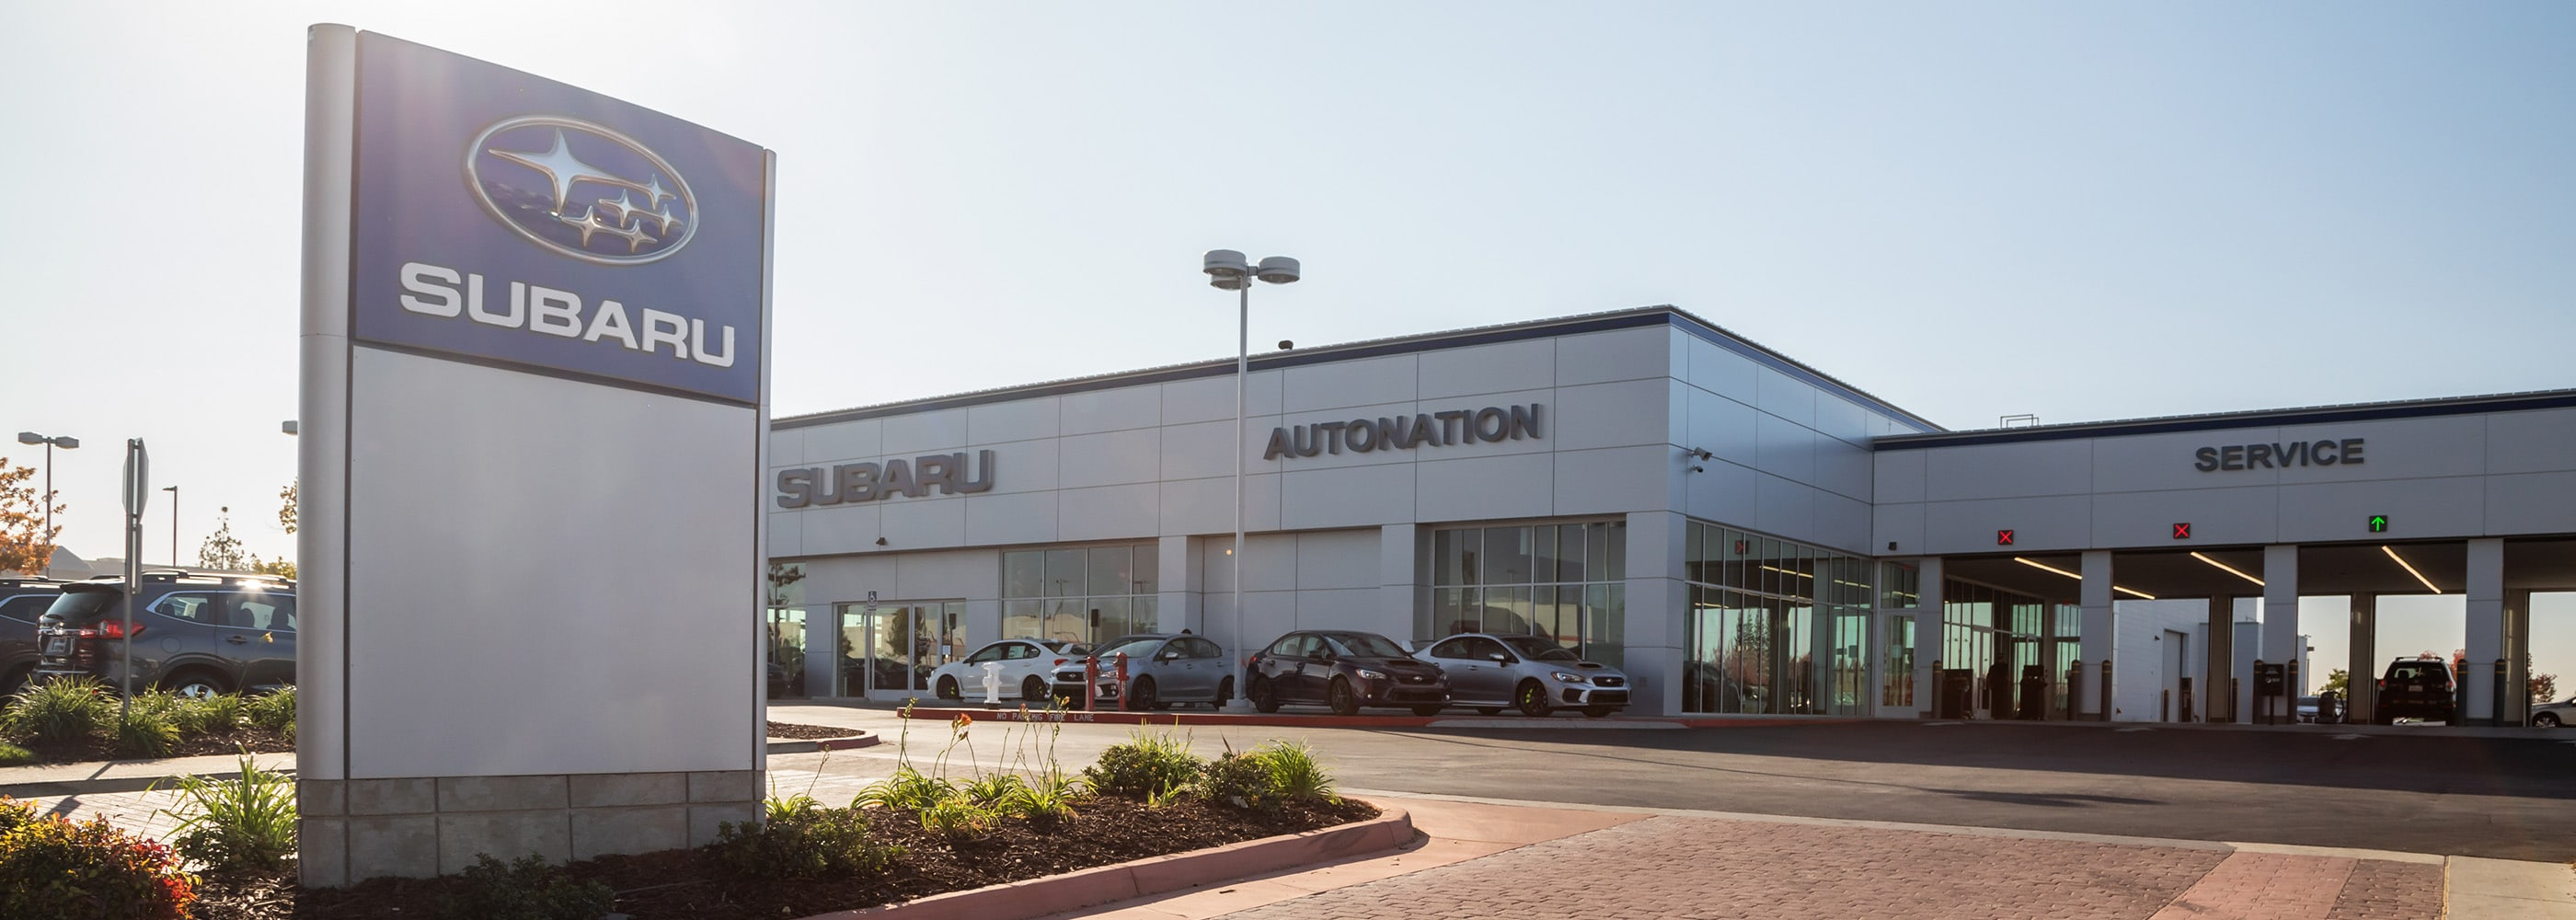 Auto Nation Subaru >> Roseville Subaru Dealer Autonation Subaru Roseville